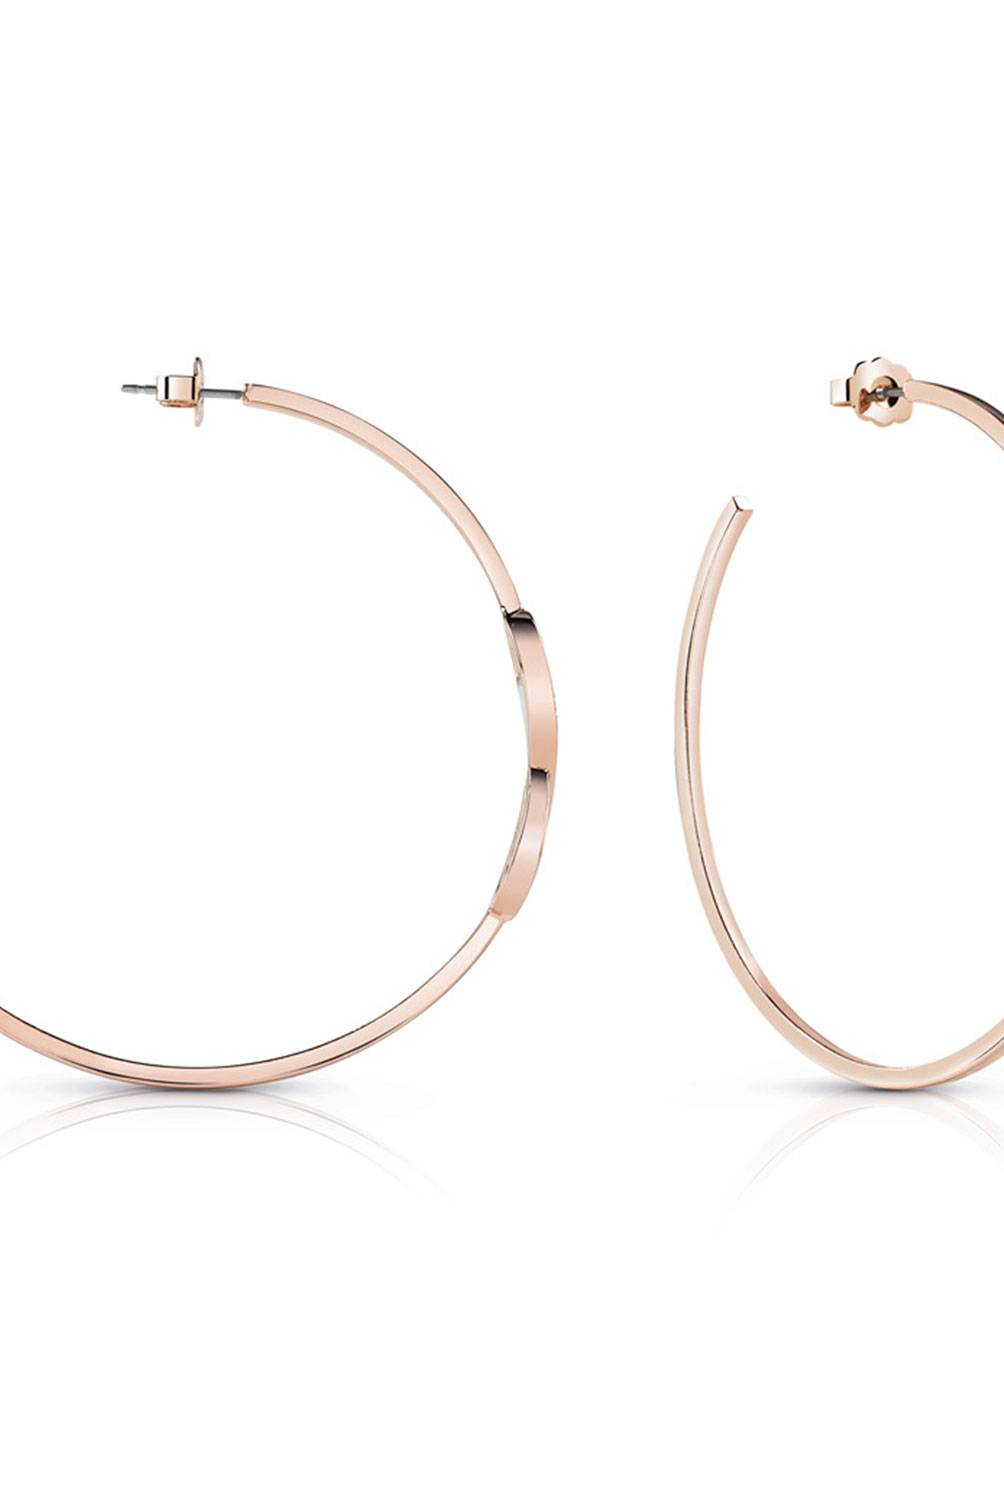 Guess - Aretes Guess Endless Love UBE85009